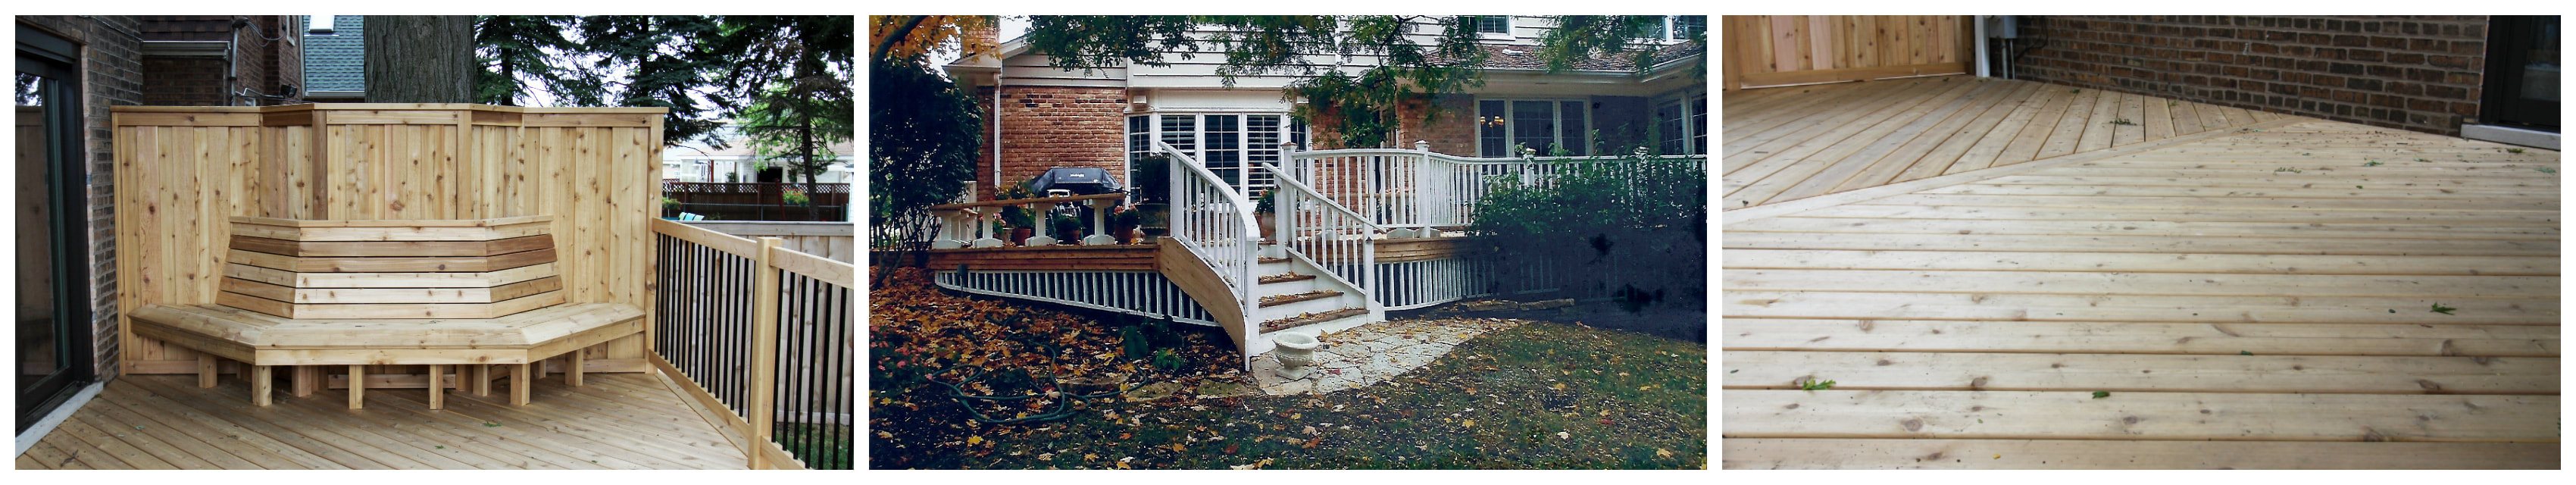 deck-patio-construction-installation-repair-chicago-suburbs-wood-sealant-railing-curved